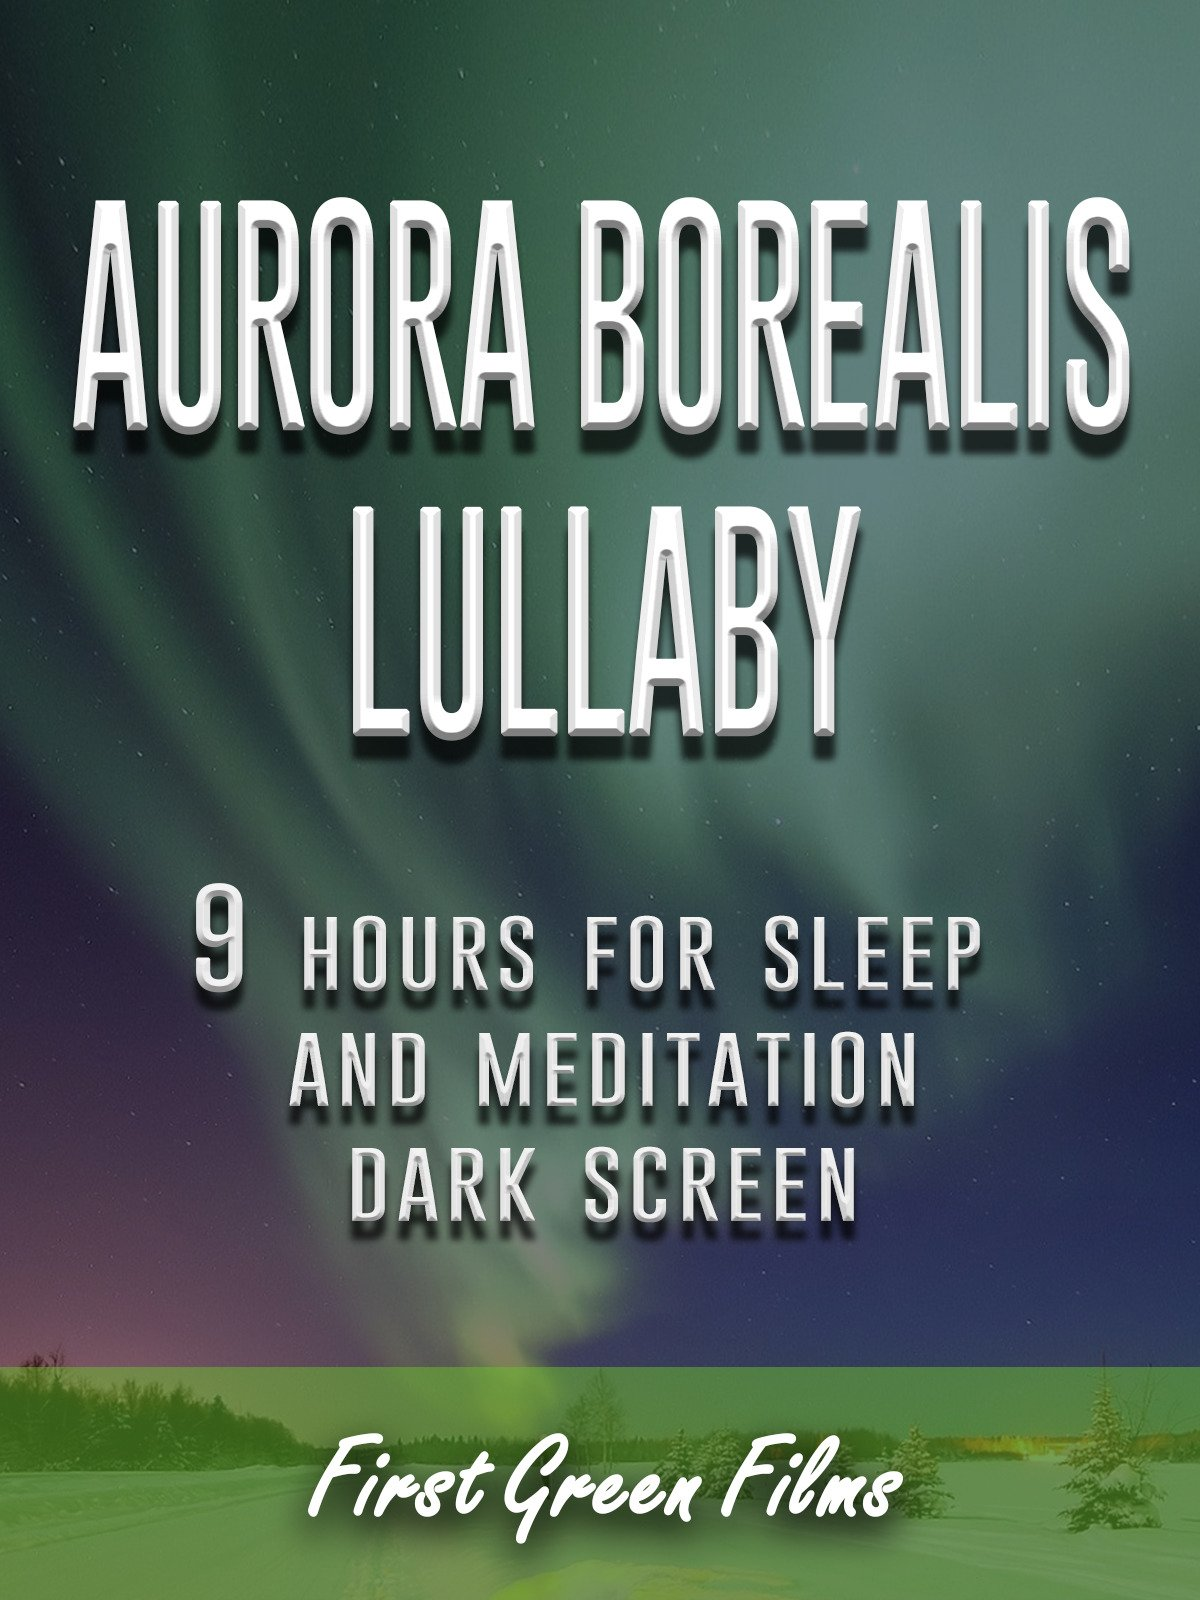 Aurora borealis lullaby, 9 hours for Sleep and Meditation, dark screen